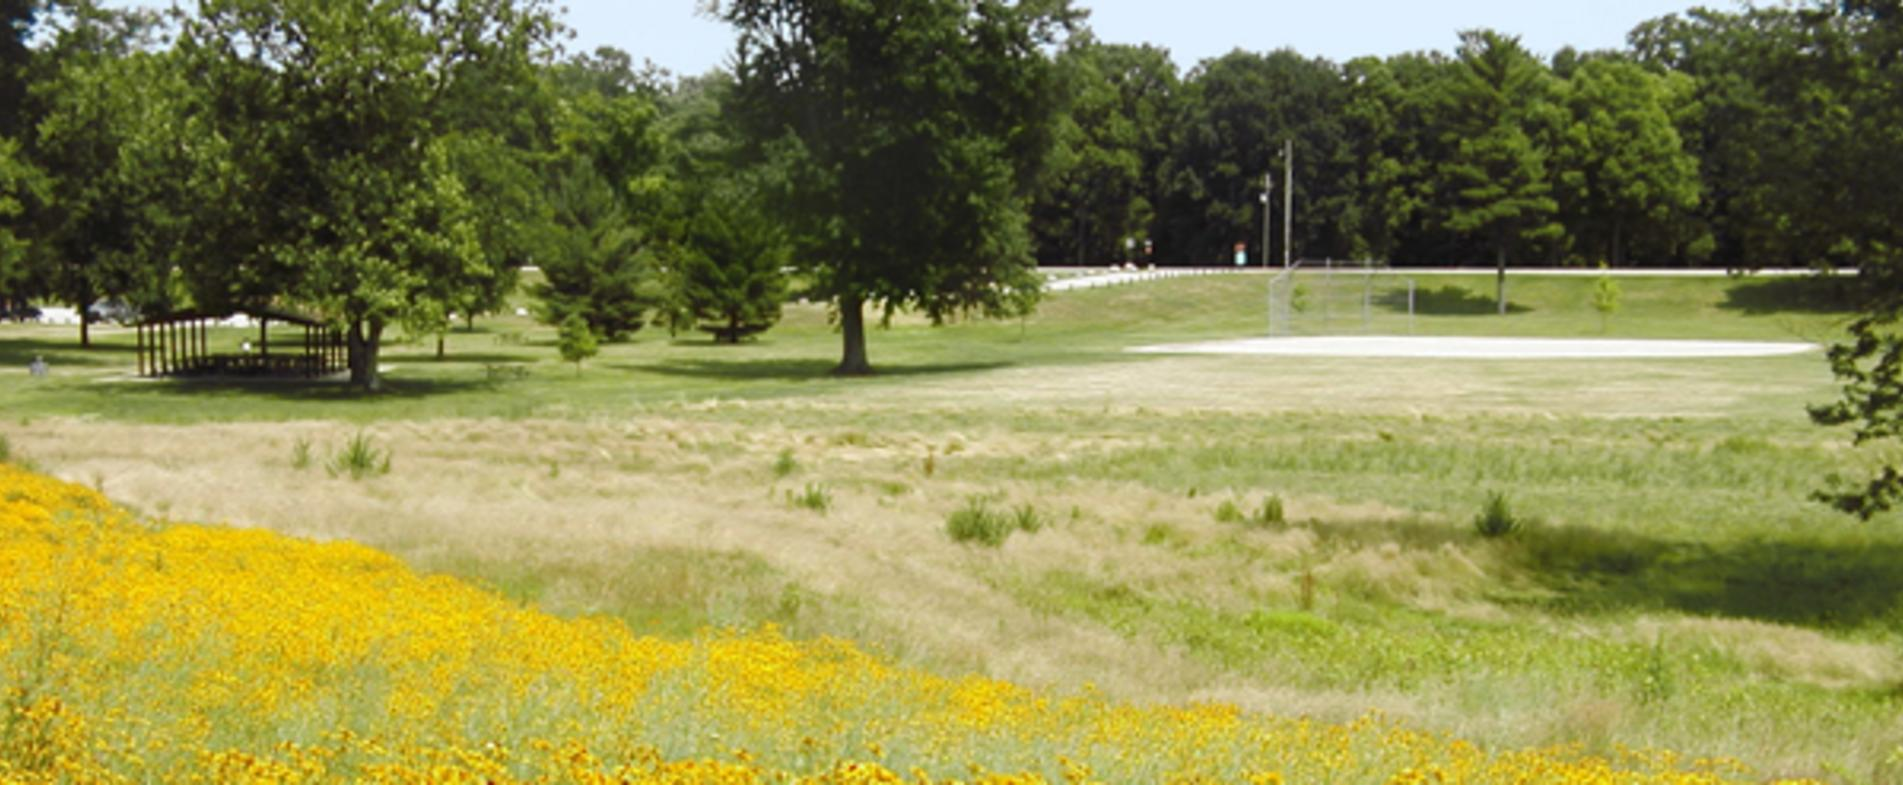 Right next to Millennium Park lies Johnson Park, which connects bikers to nearby towns such as Grandville.